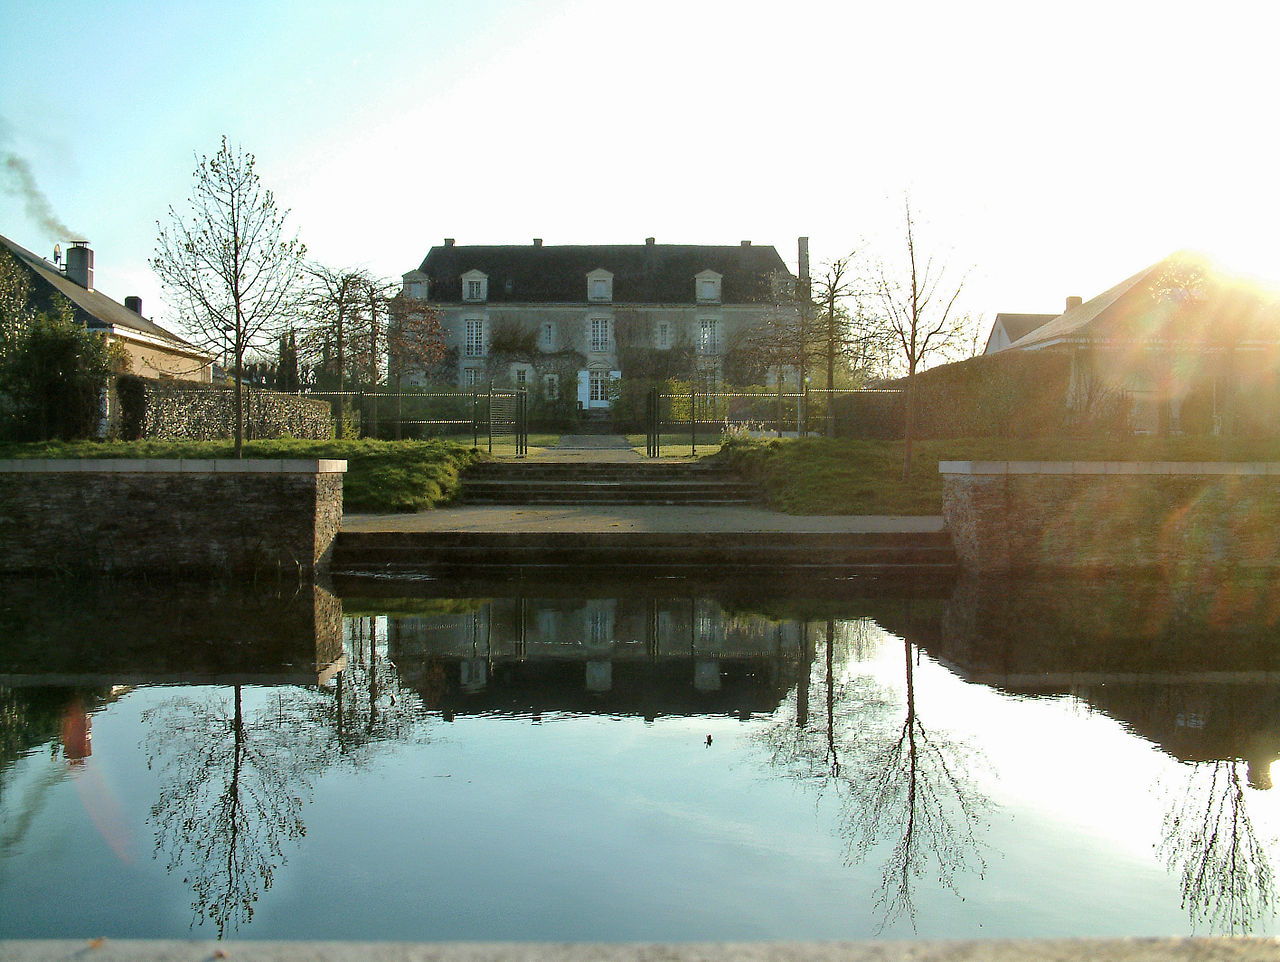 Water mirror of the Château de Bois-Briand, France